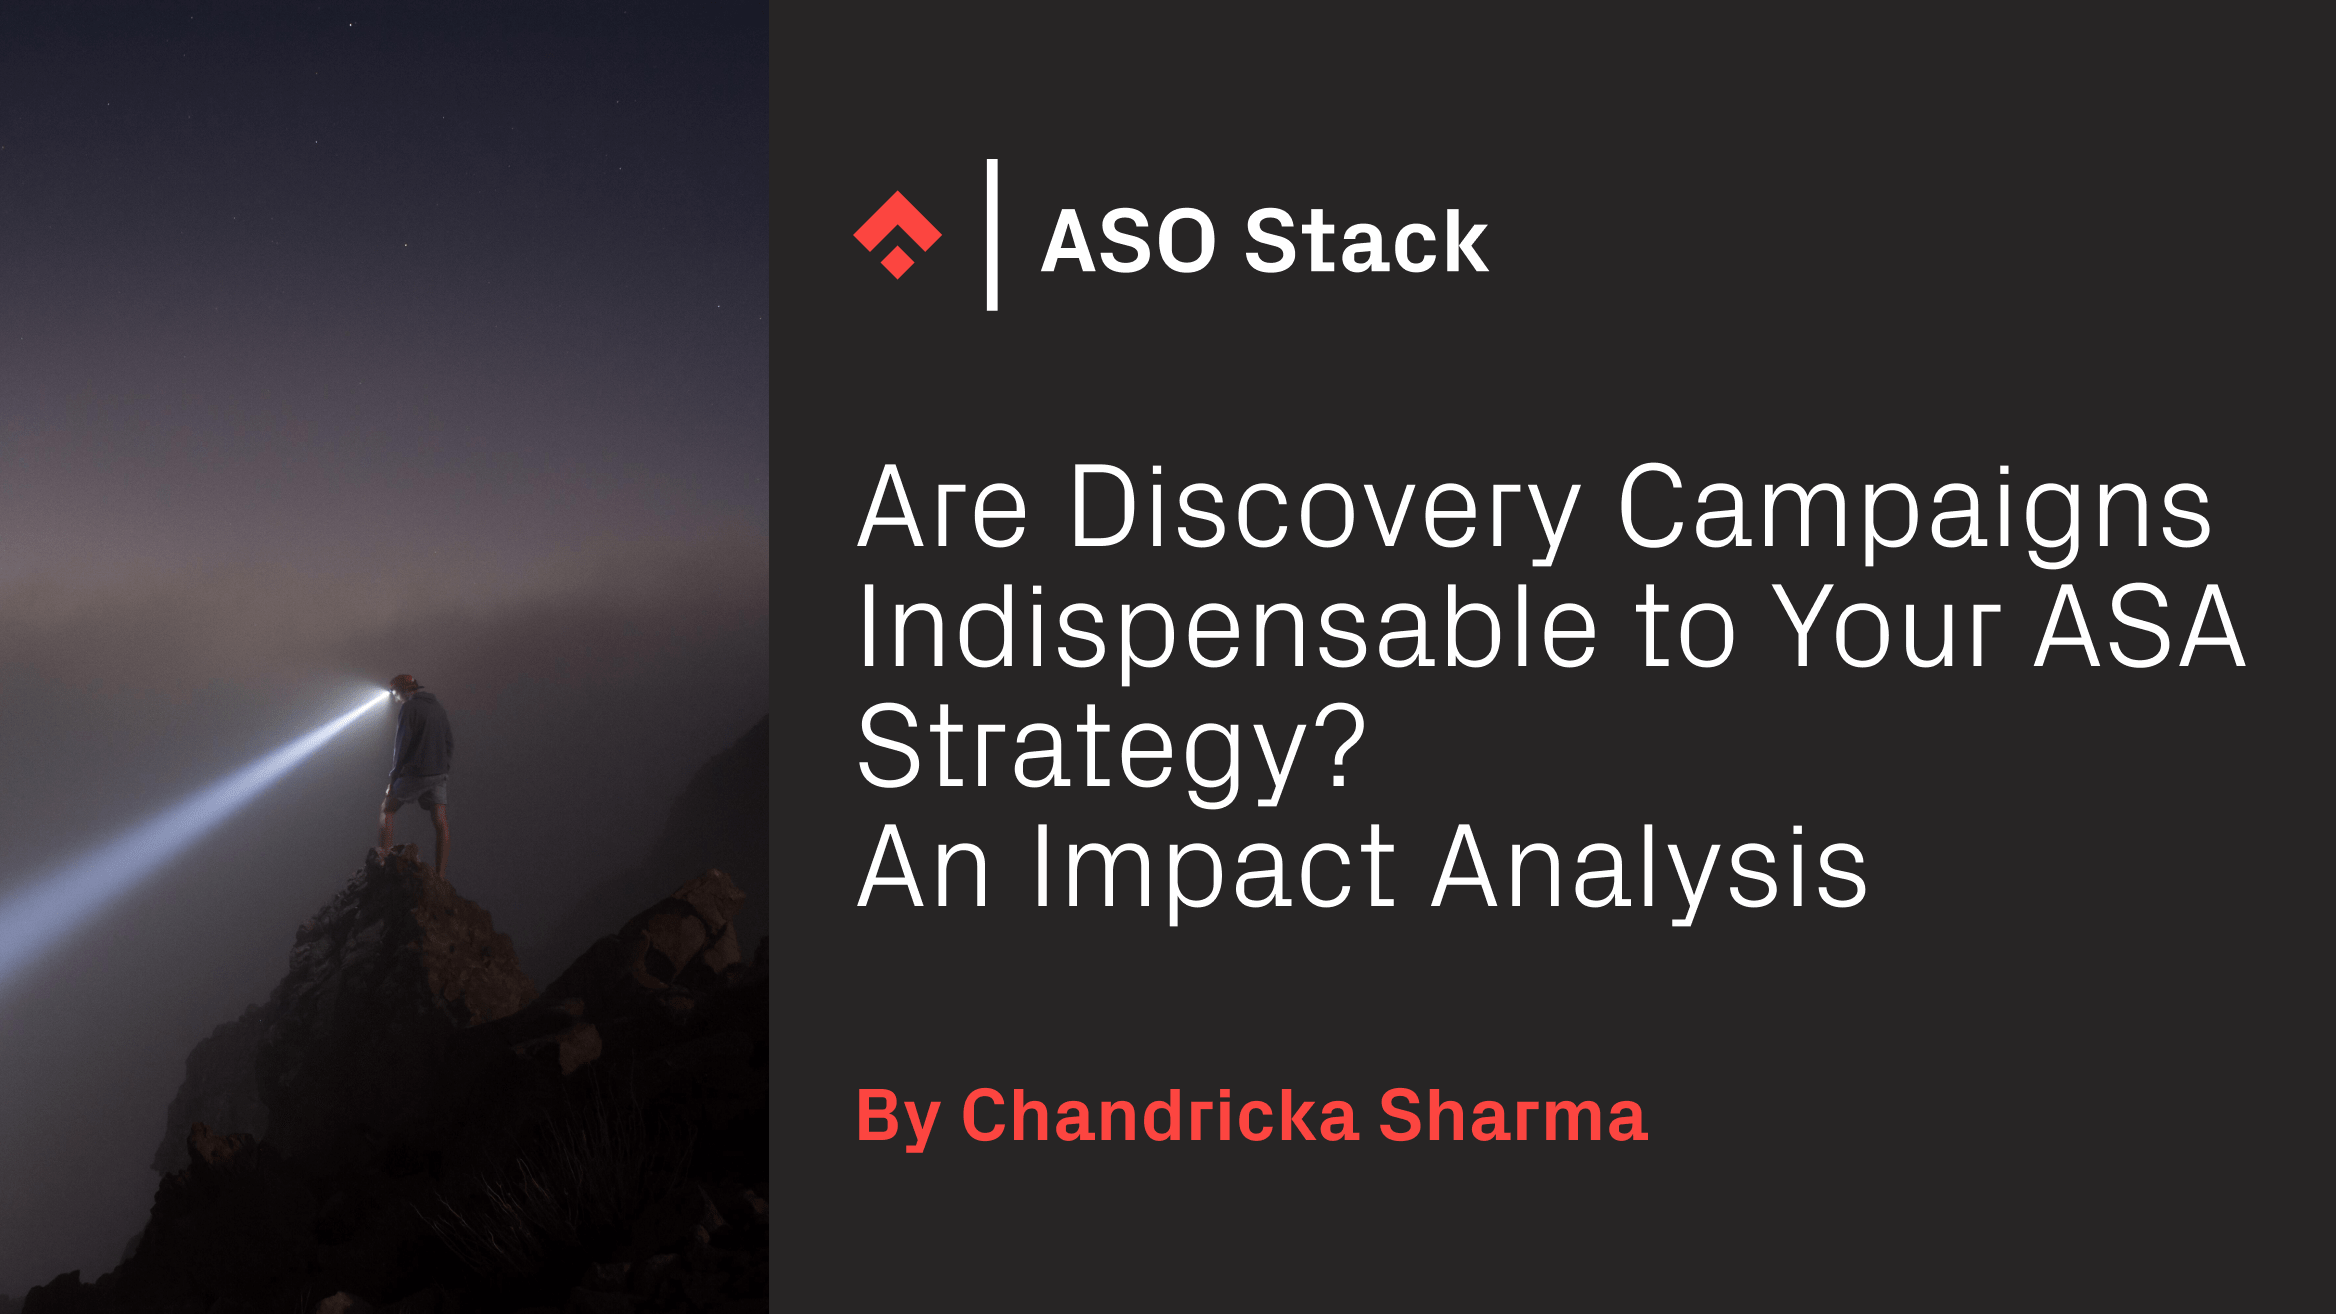 Are discovery campaigns indispensable to your ASA strategy